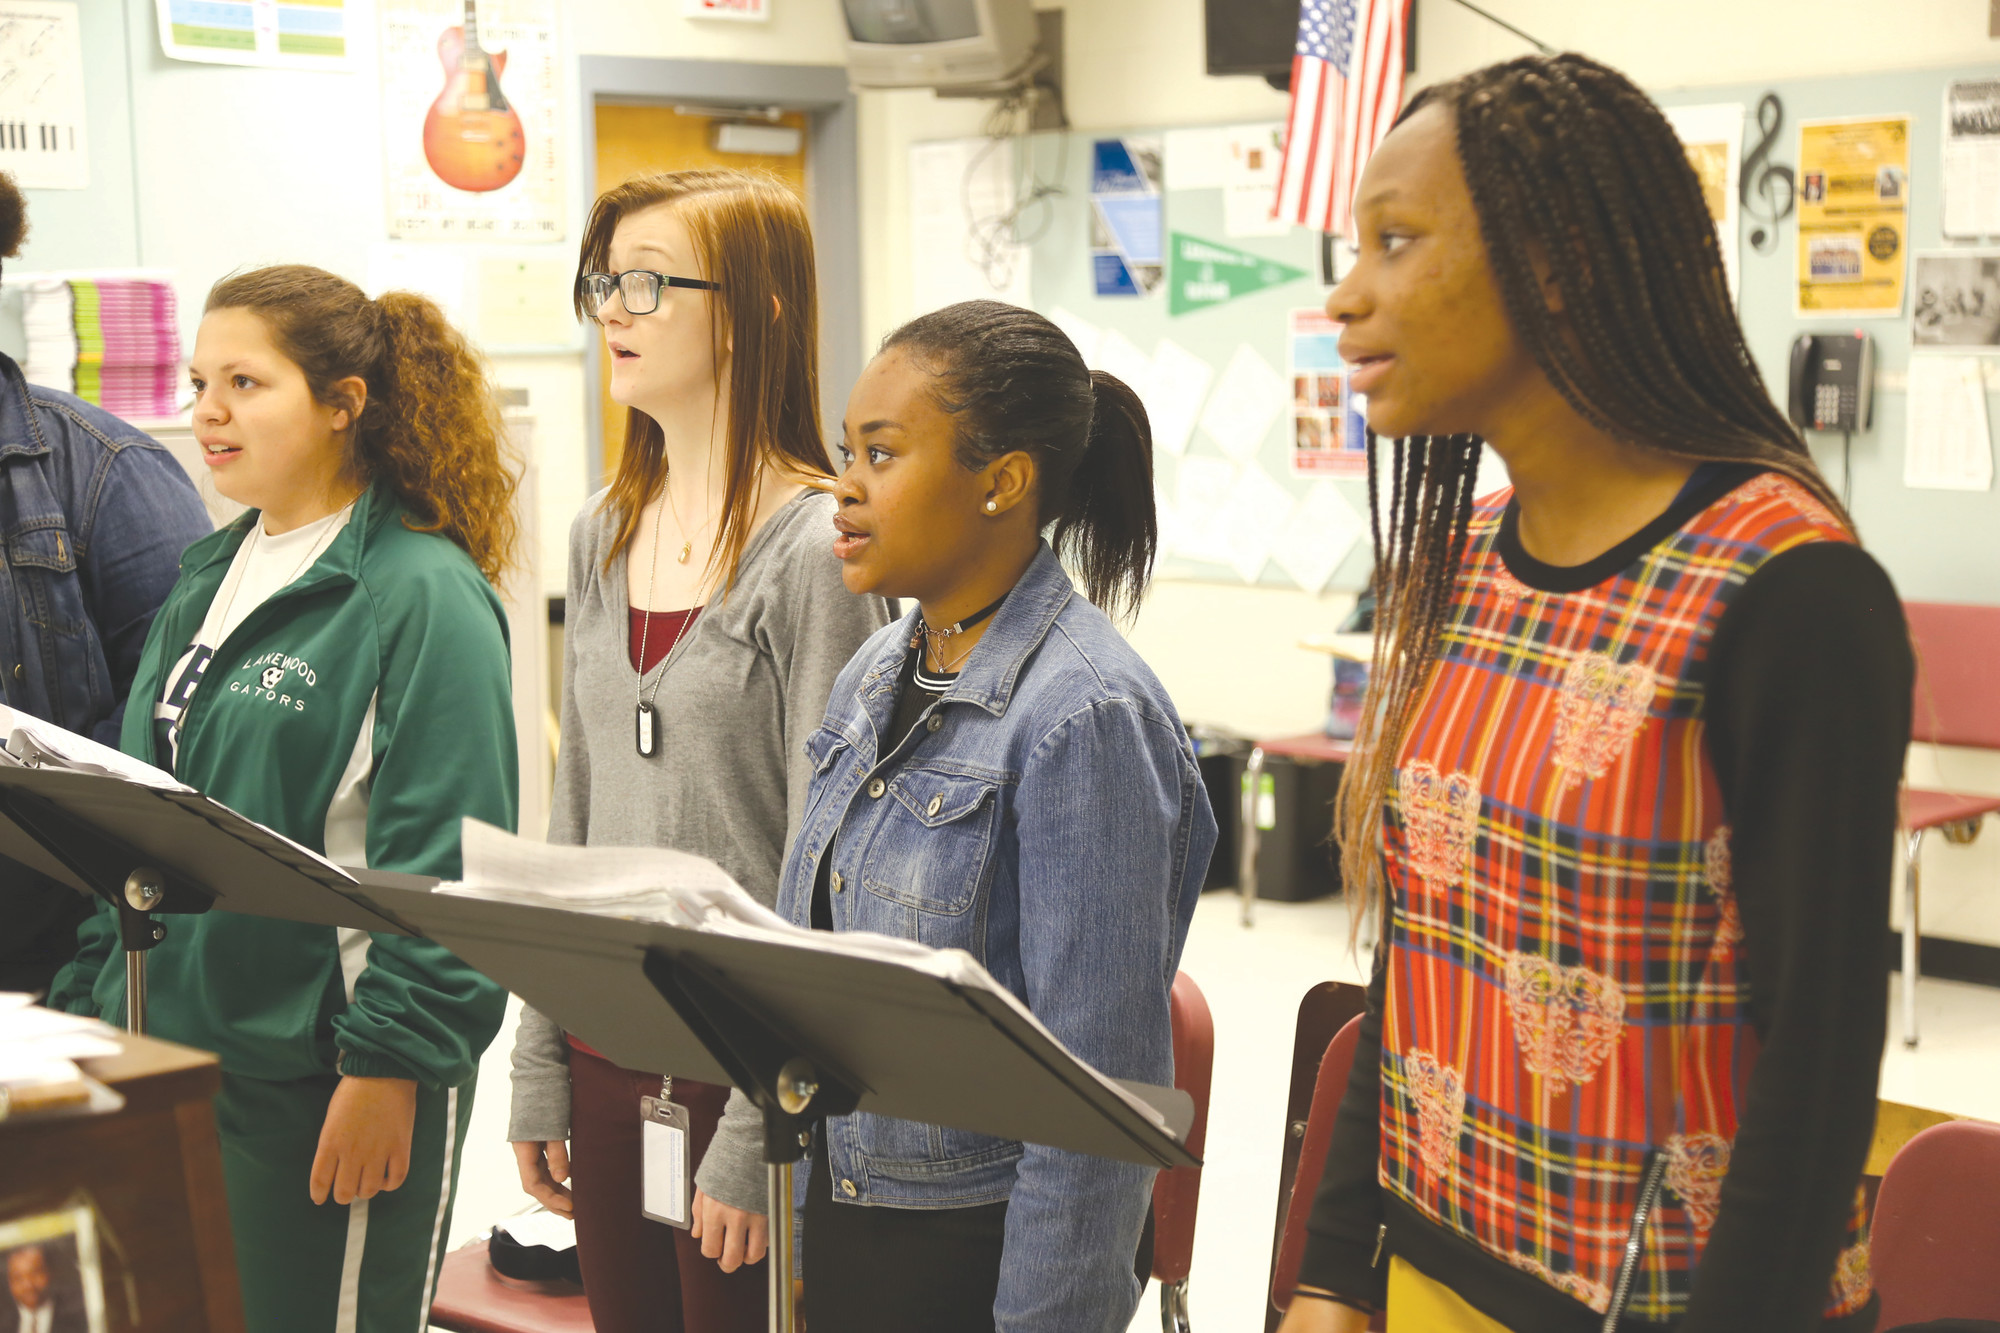 Members of the Lakewood High School Vocal Jazz Ensemble practice last week during class at the school.